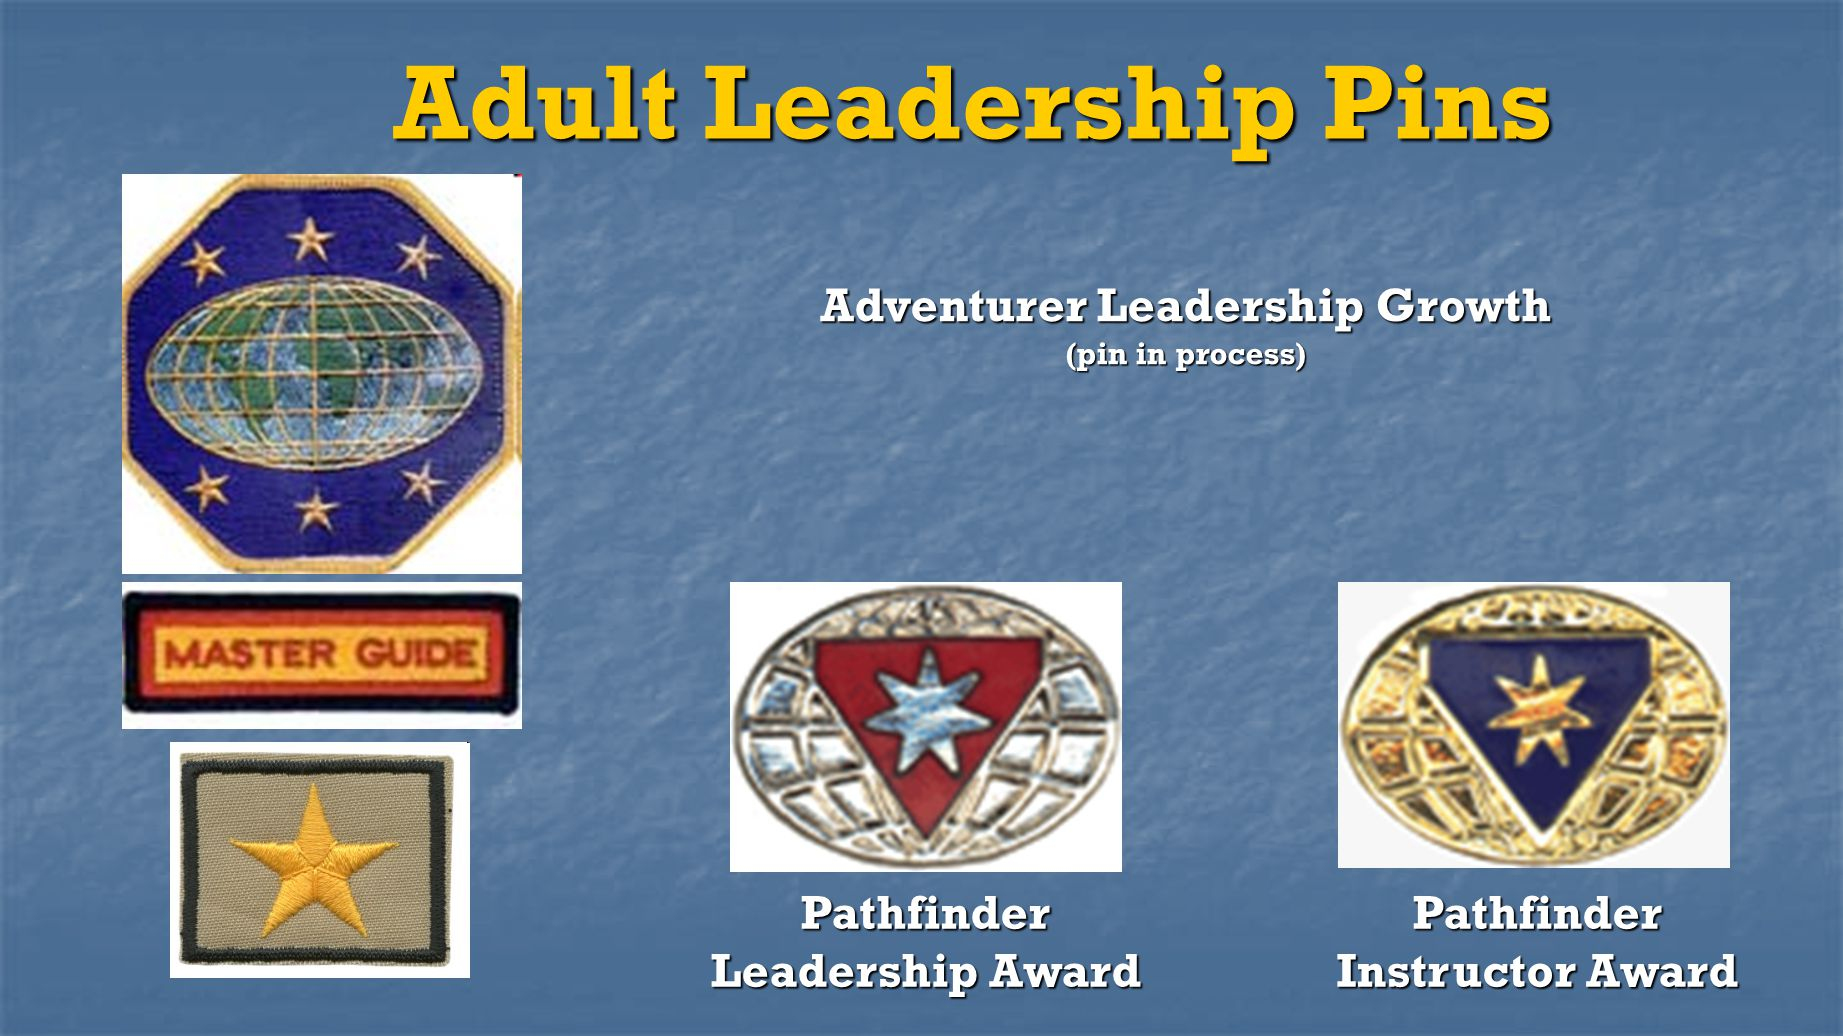 Adult Leadership Pins Adventurer Leadership Growth (pin in process)